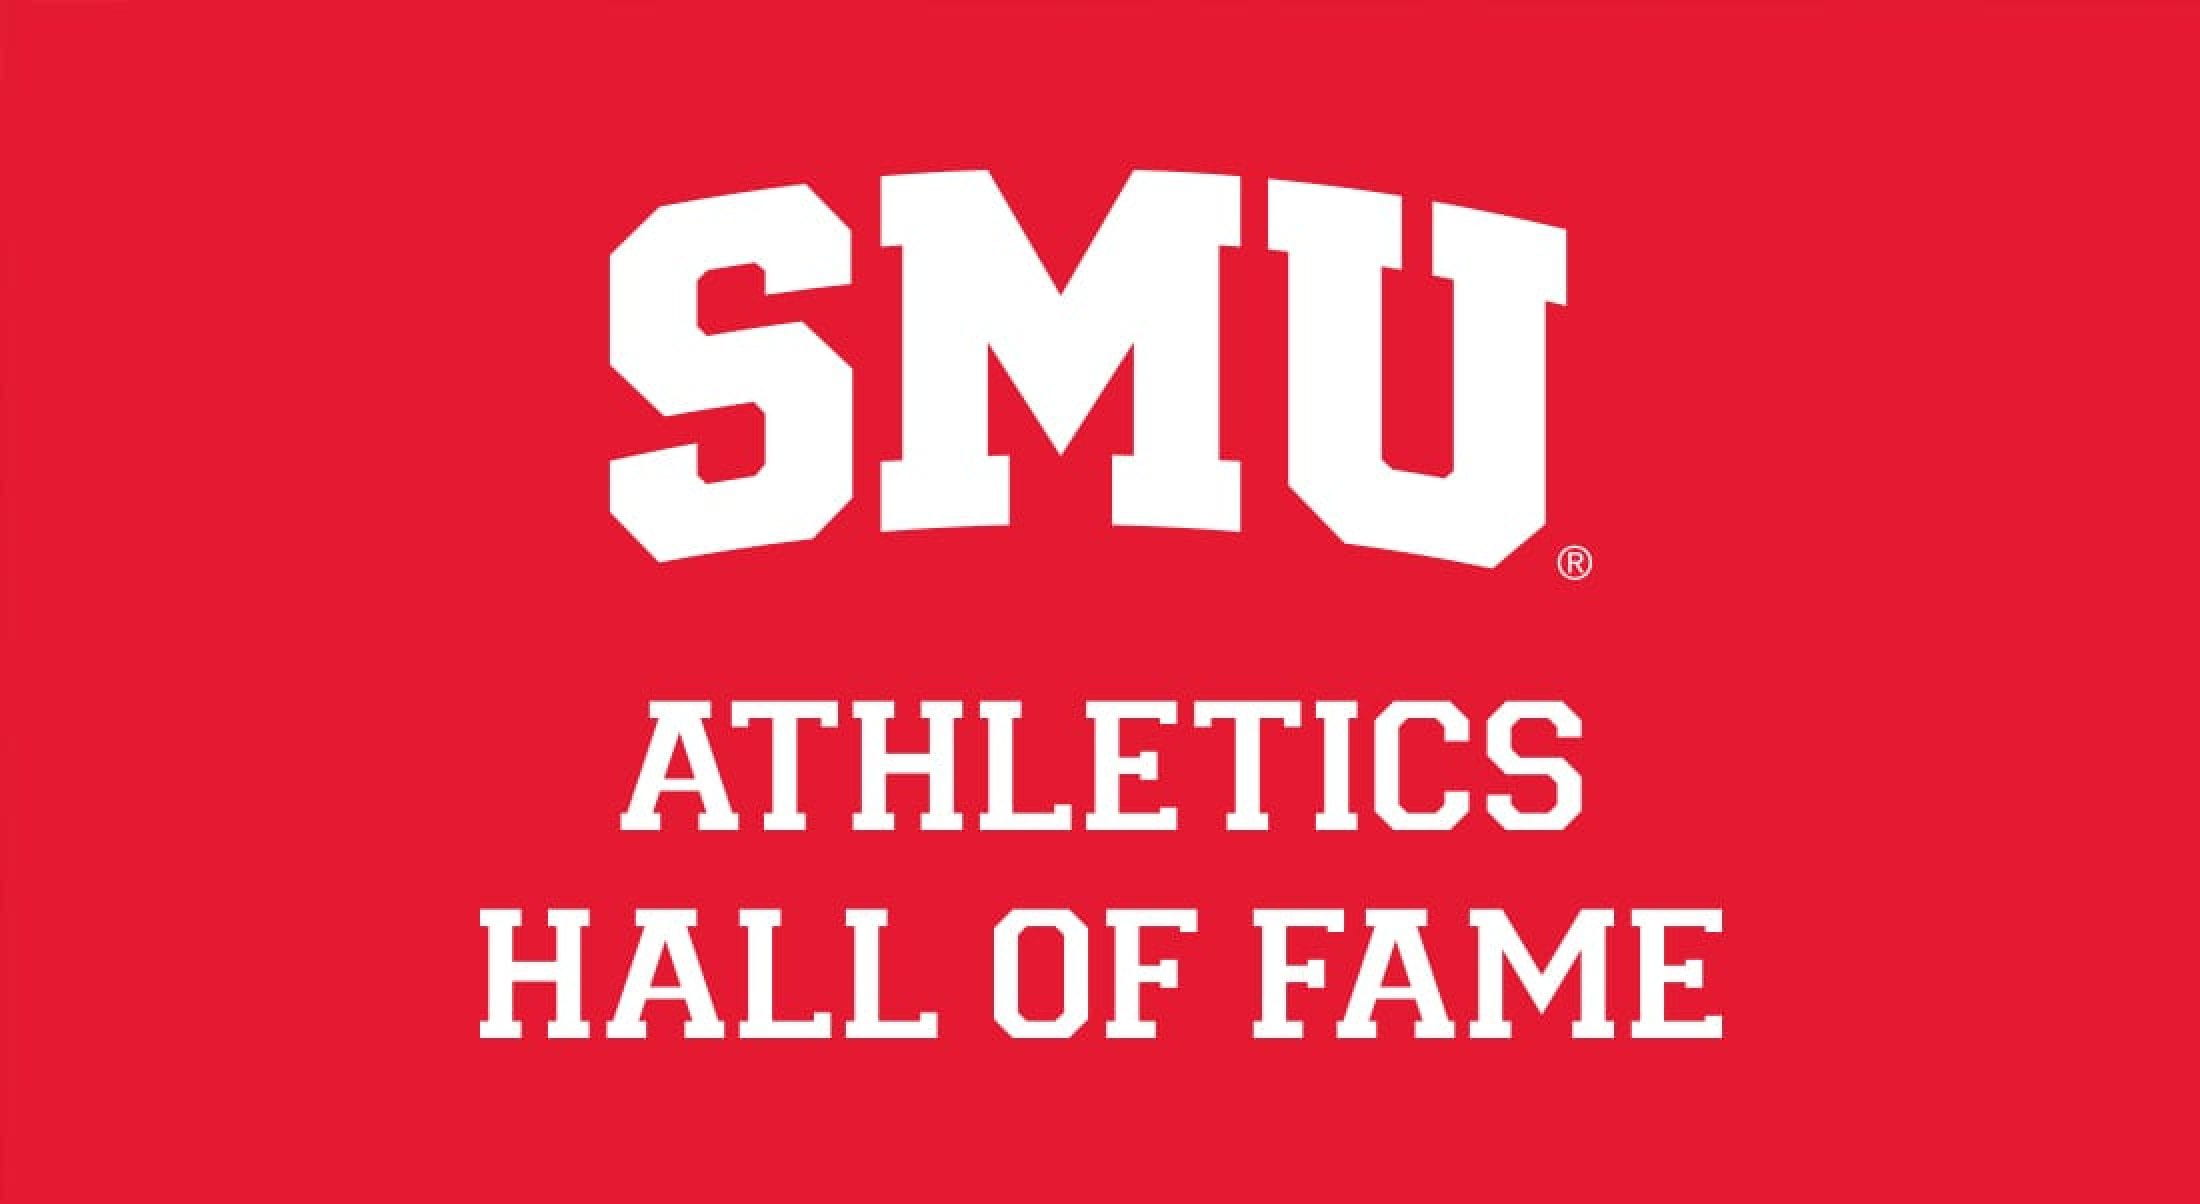 SMU Athletics Hall of Fame graphic